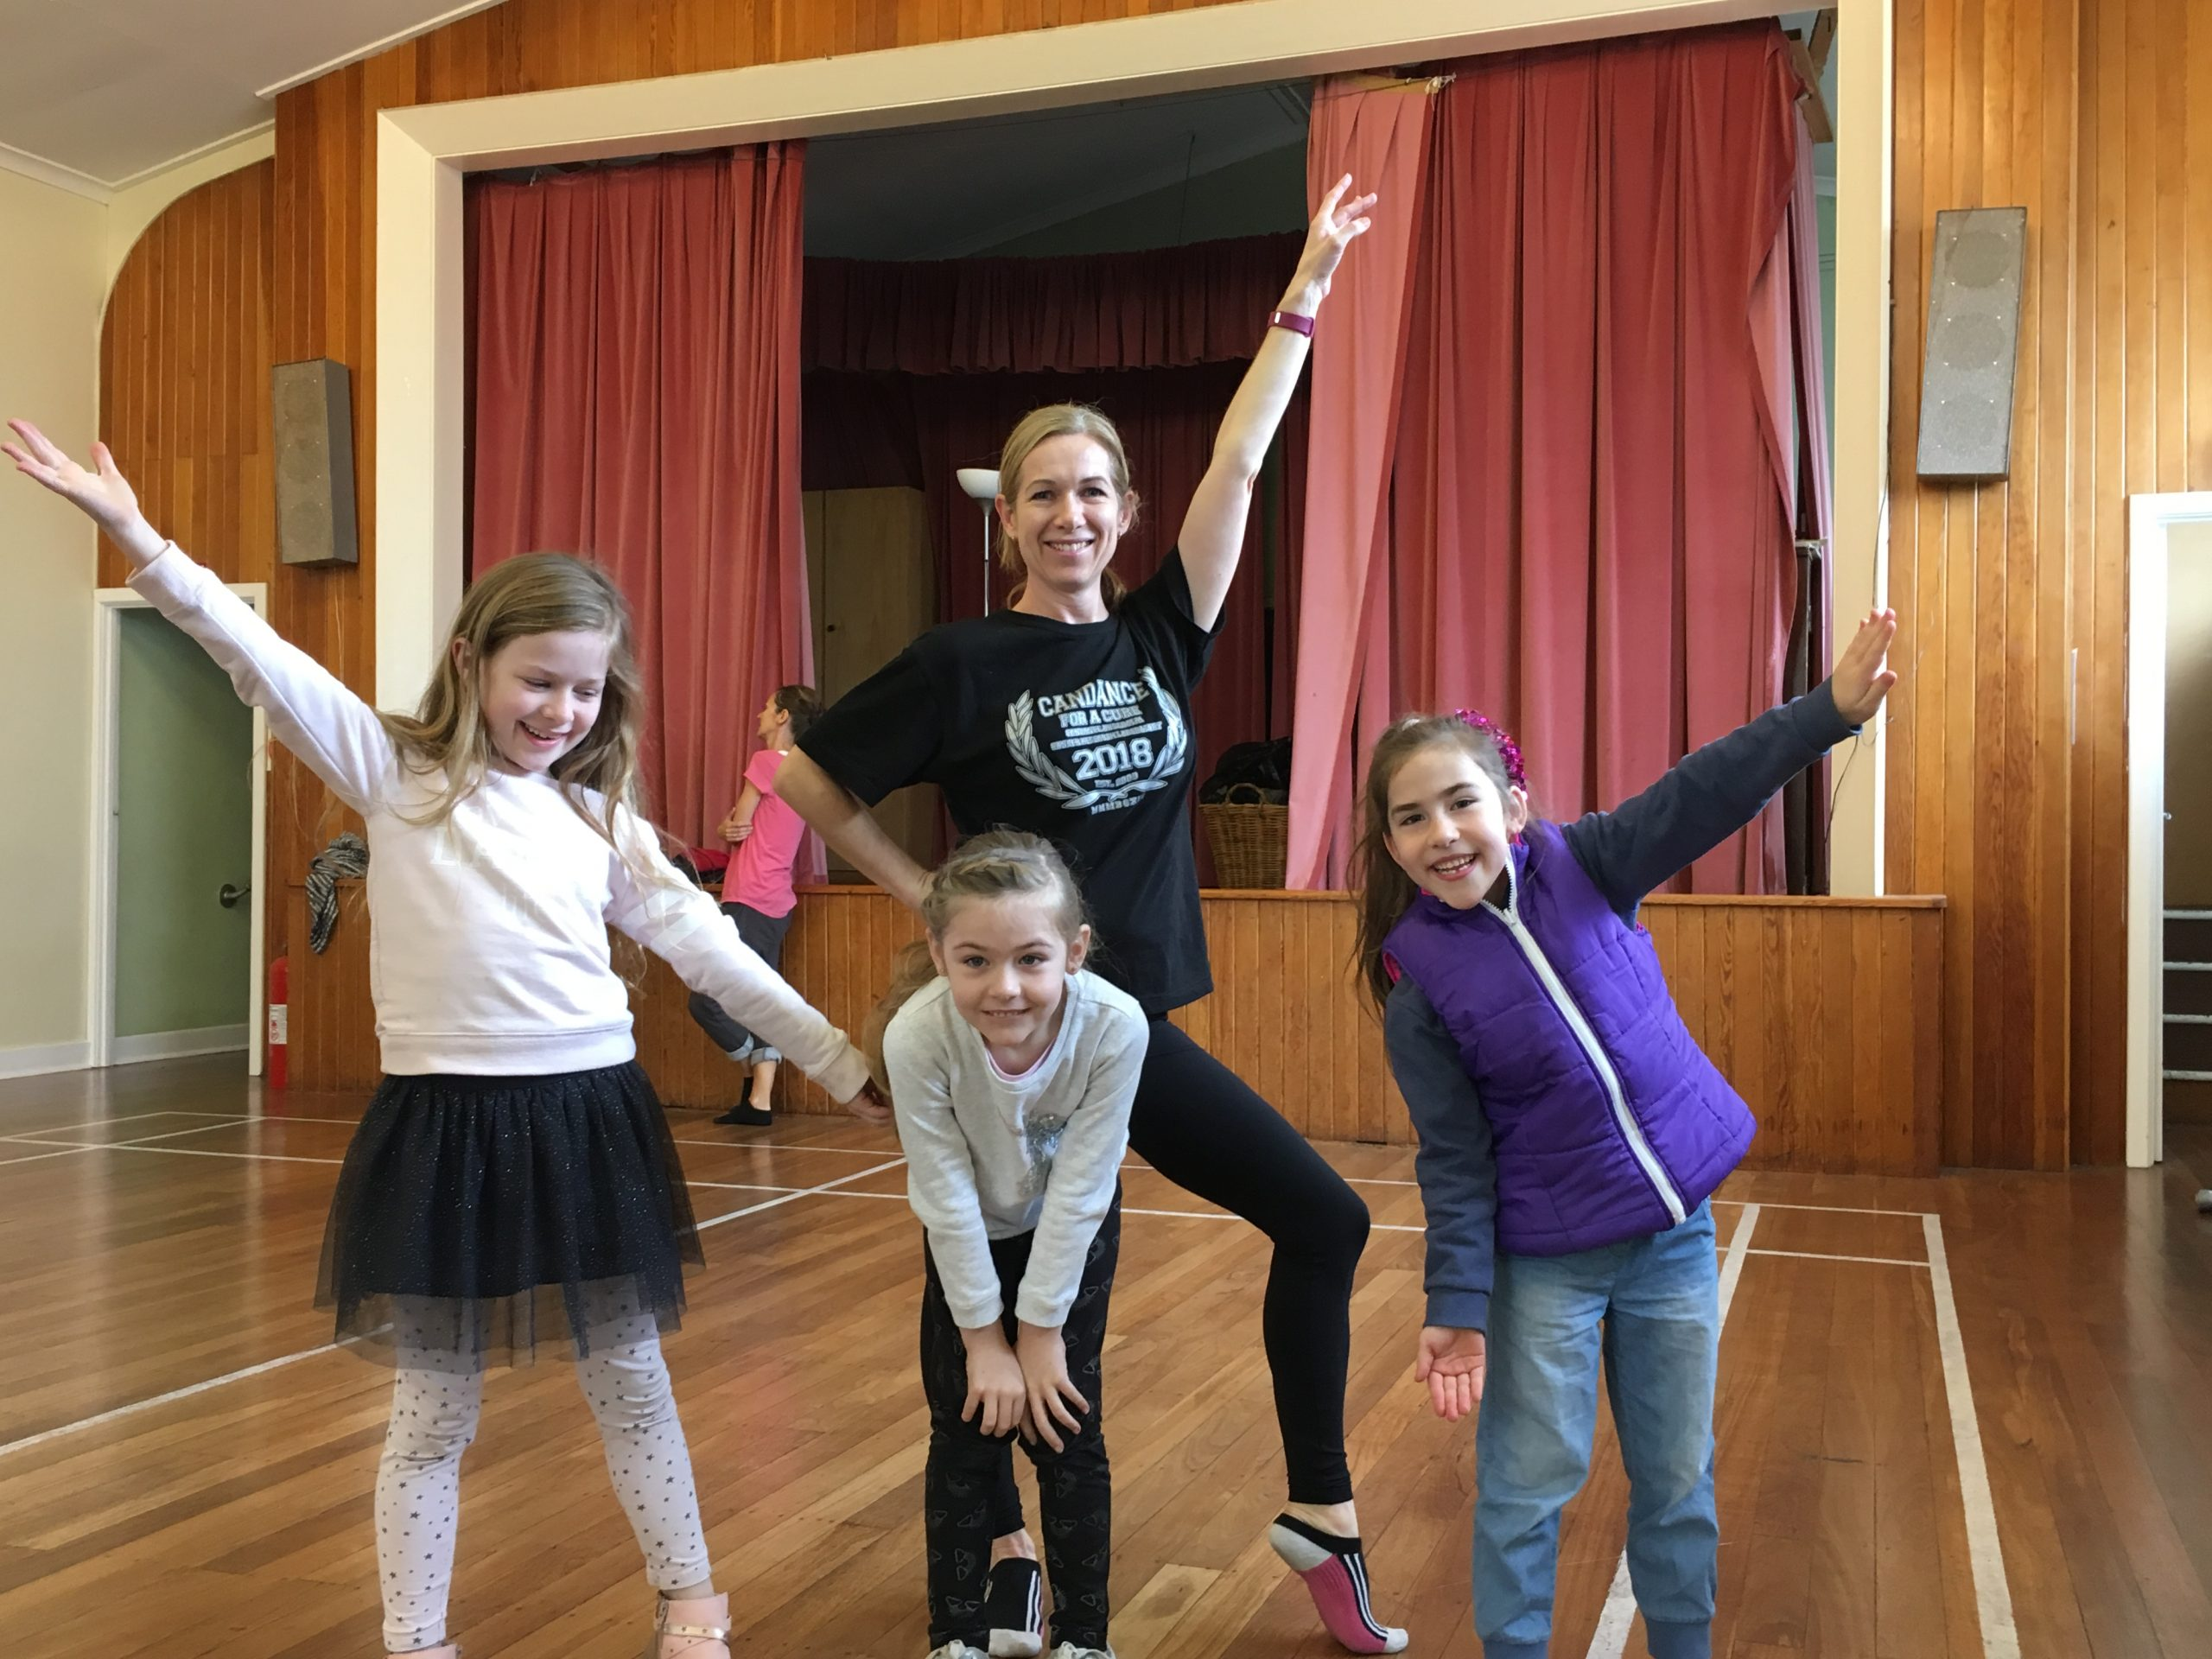 Mother of three Mardi Daniells loves her Monday morning ballet class with Move Through Life Dance Studio